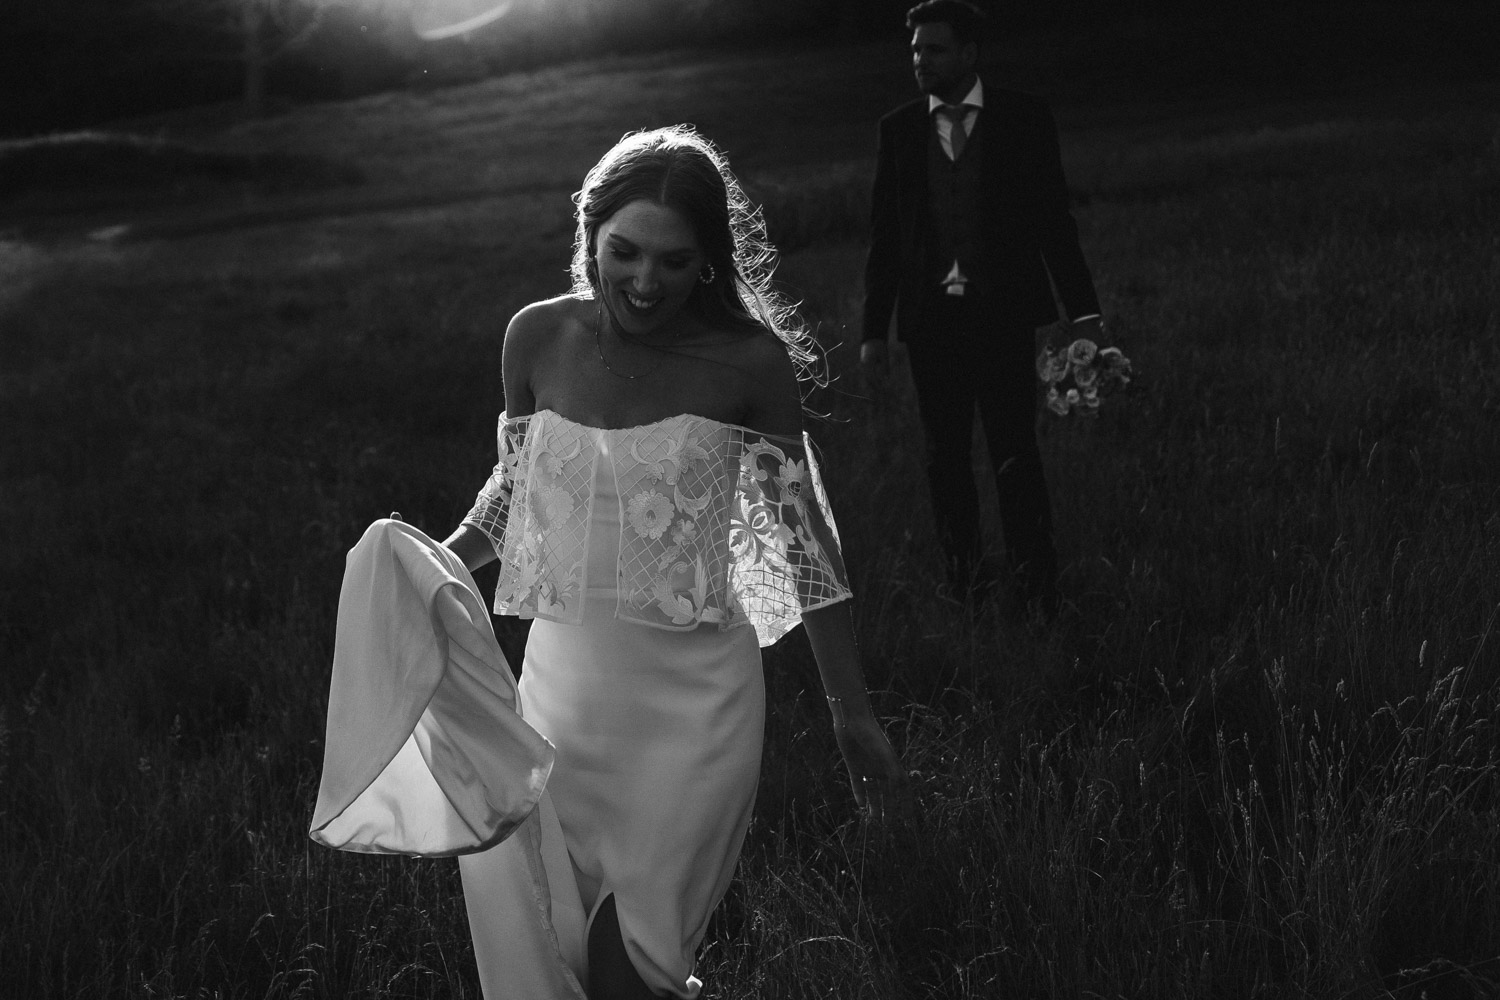 a glamorous and dramatic photo of the bride and groom in the secluded field